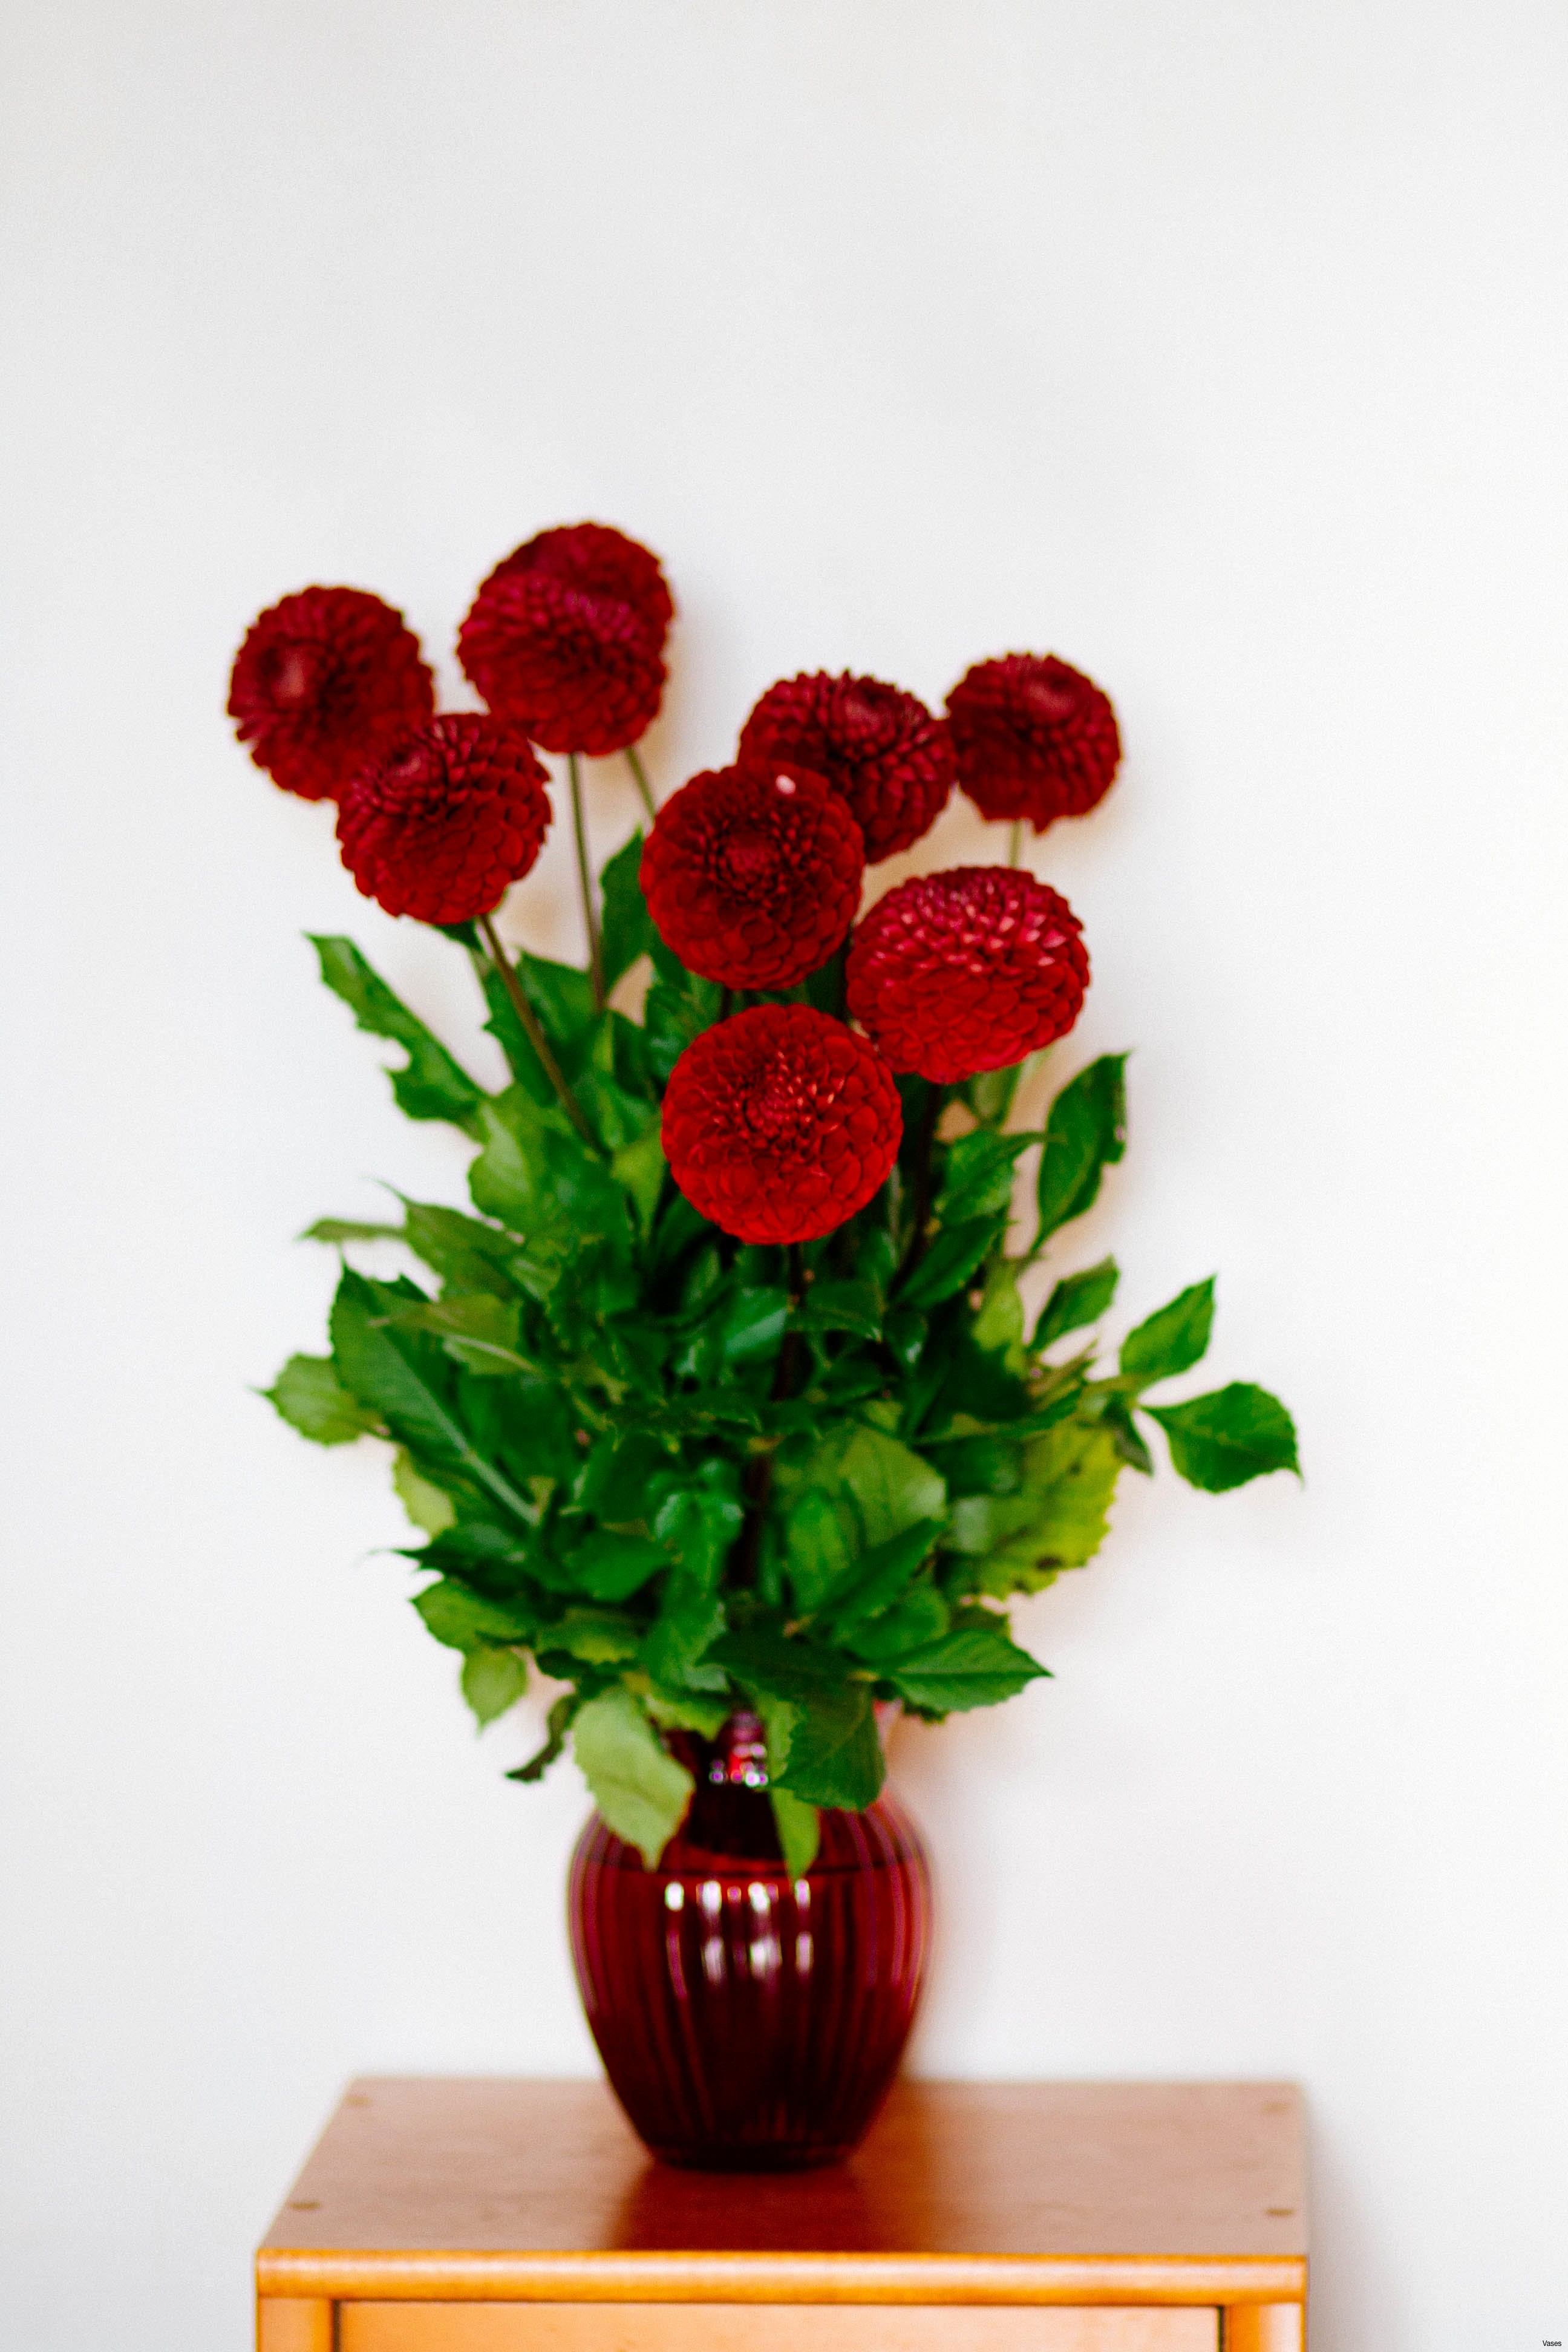 vase with red roses of 13 best of red roses in a vase wallpapers cuva wallpaper intended for red roses in a vase wallpapers fresh wallpaper flowers awesome flower vase with frog lid 6